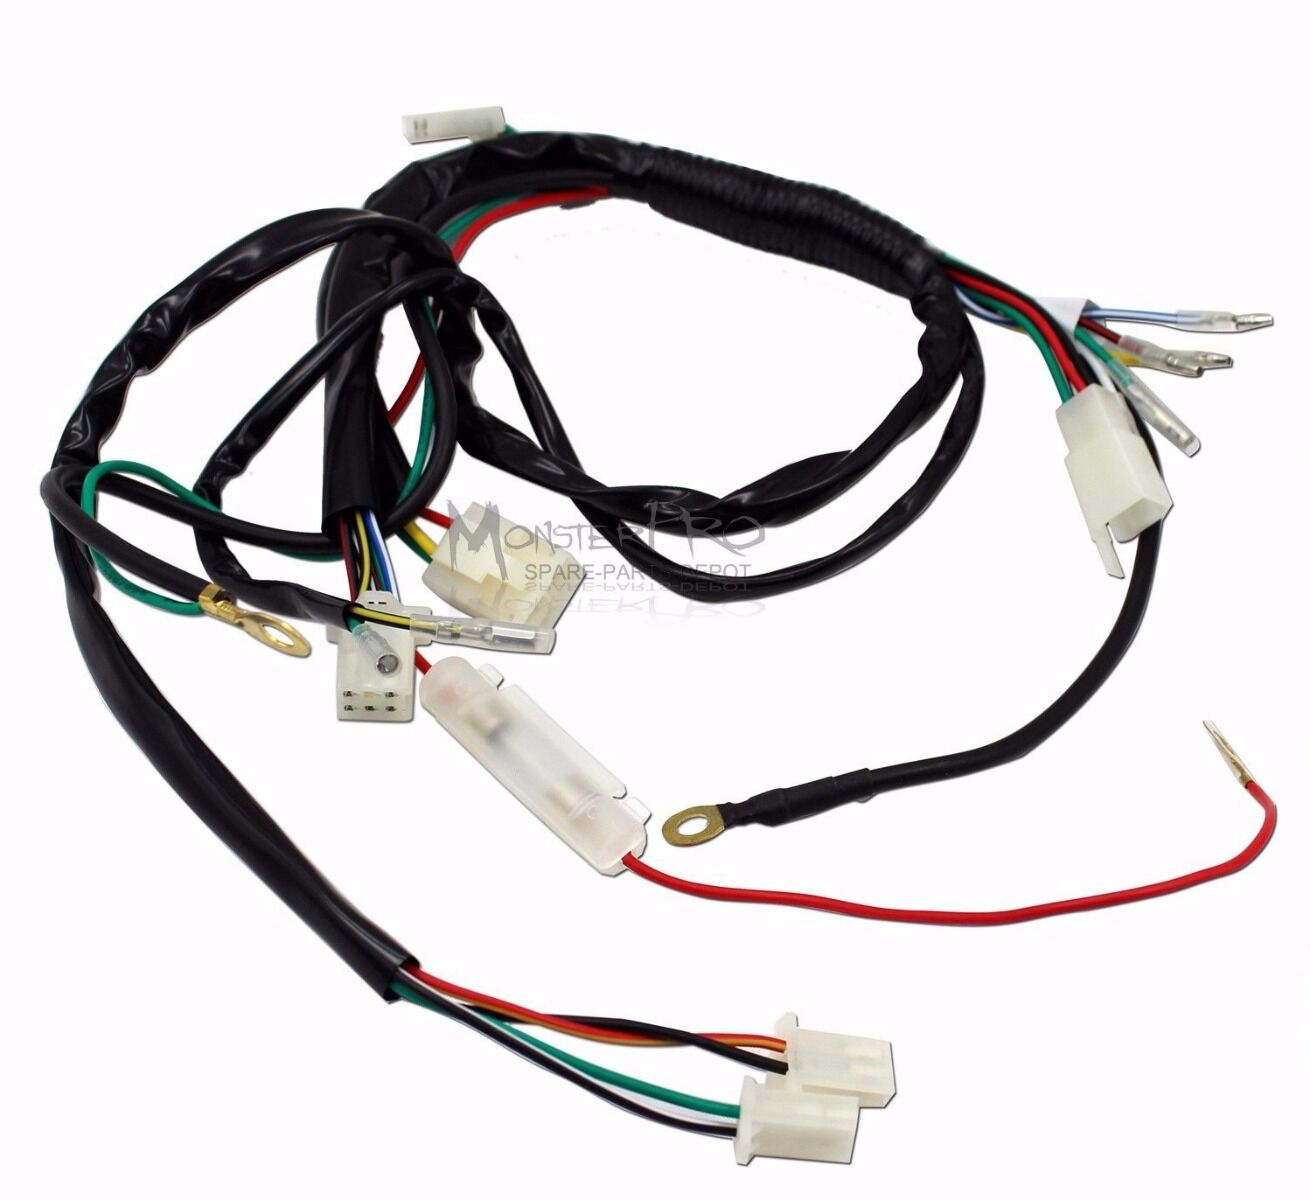 Full WIRE LOOM WIRING HARNESS 150cc 200cc 250cc 300cc ATV